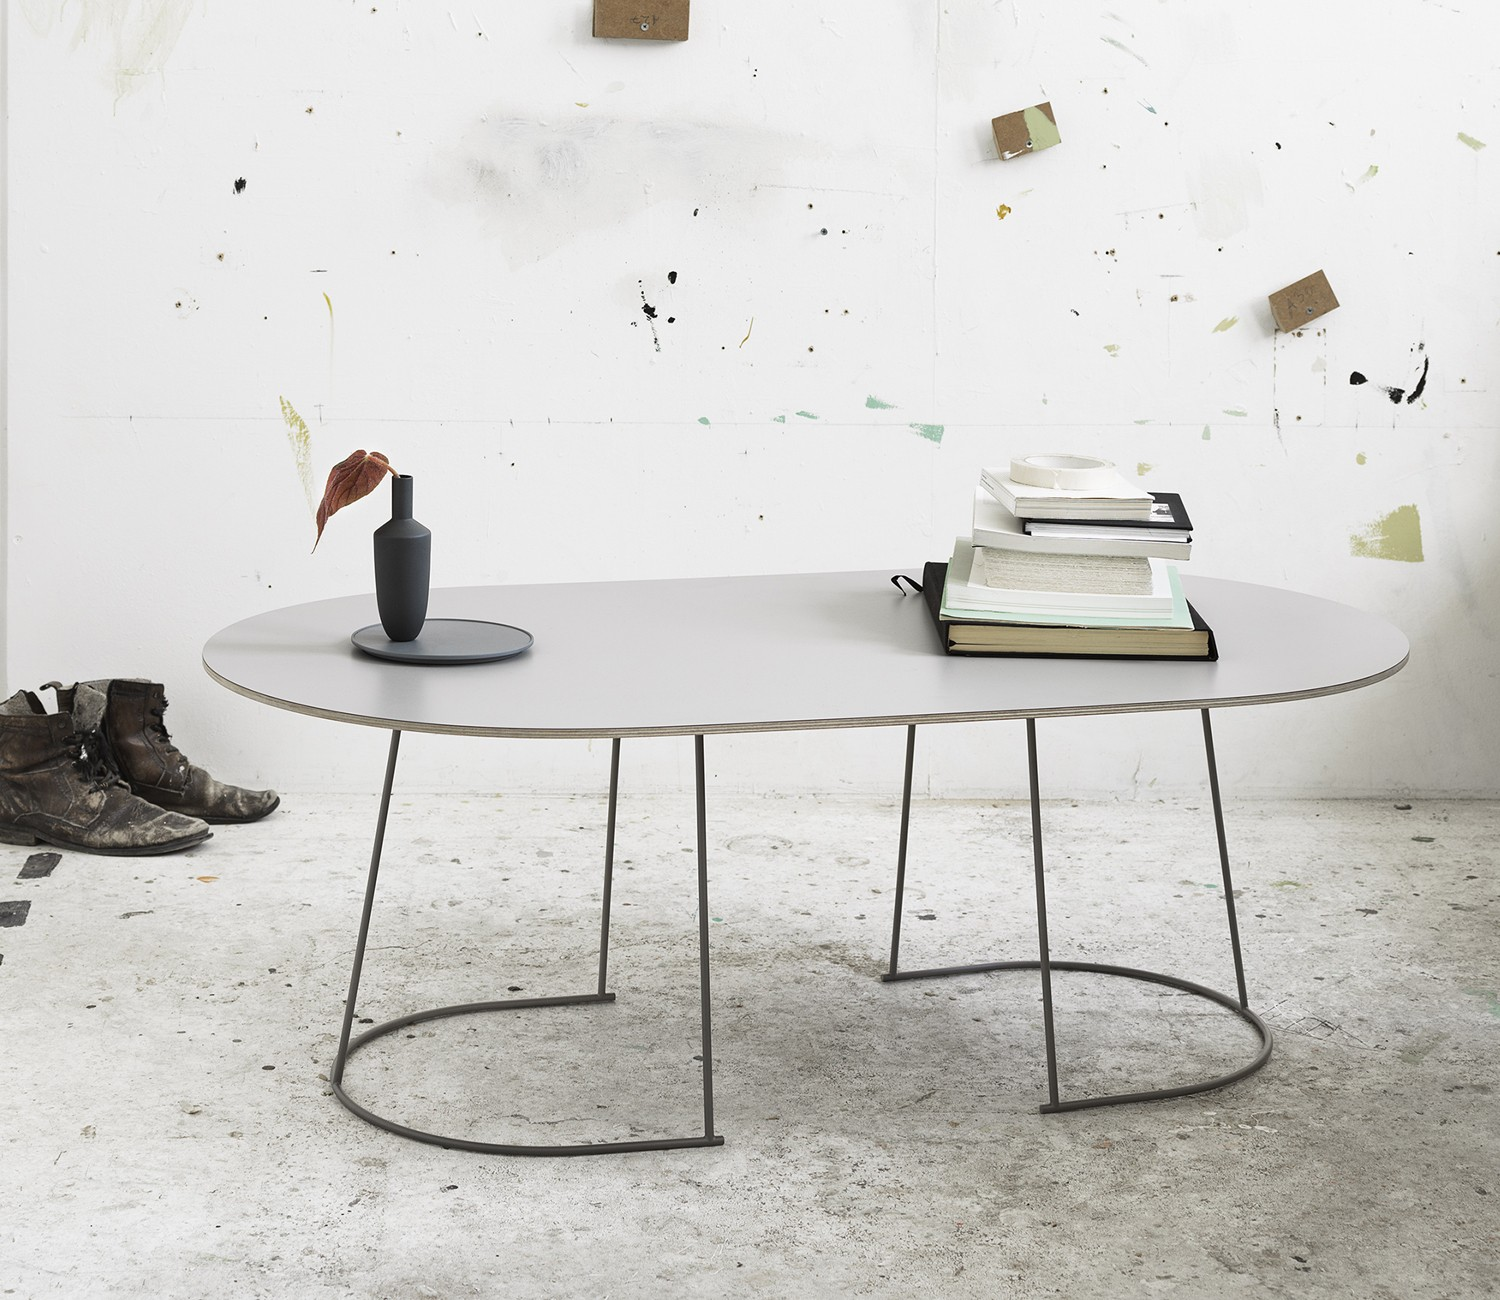 Muuto Airy Coffee table at FunktionAlley